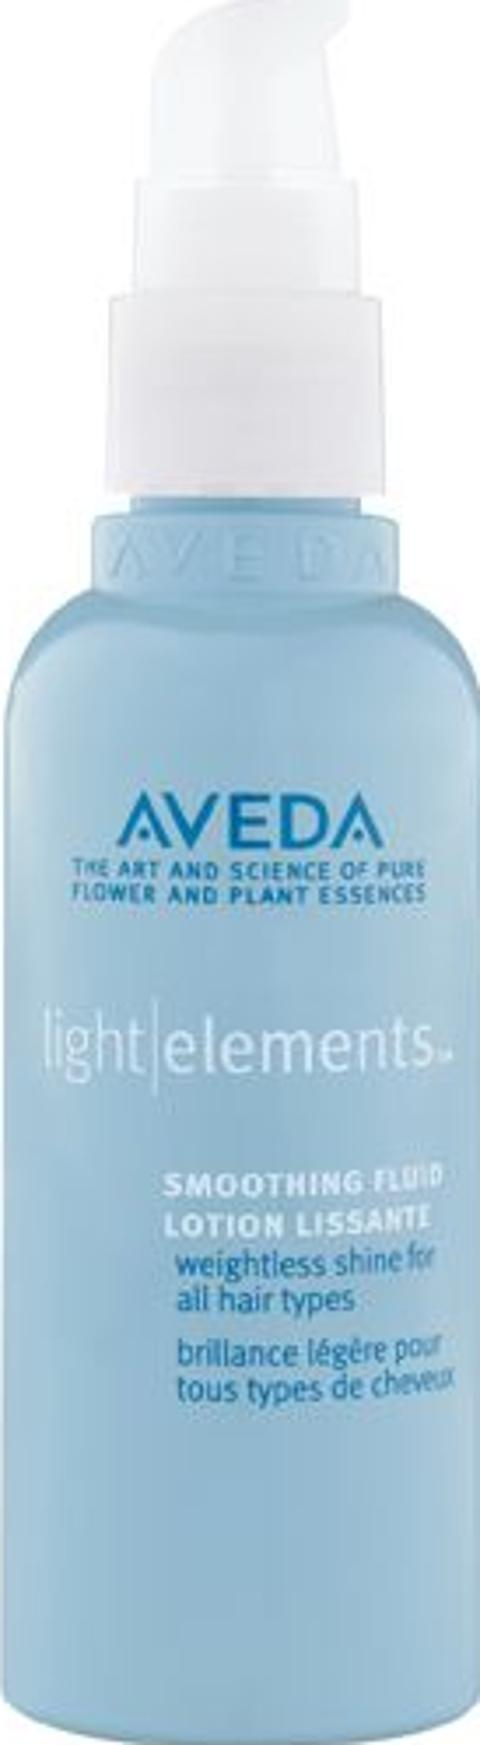 buy aveda light elements smoothing fluid 100ml for women priced at. Black Bedroom Furniture Sets. Home Design Ideas